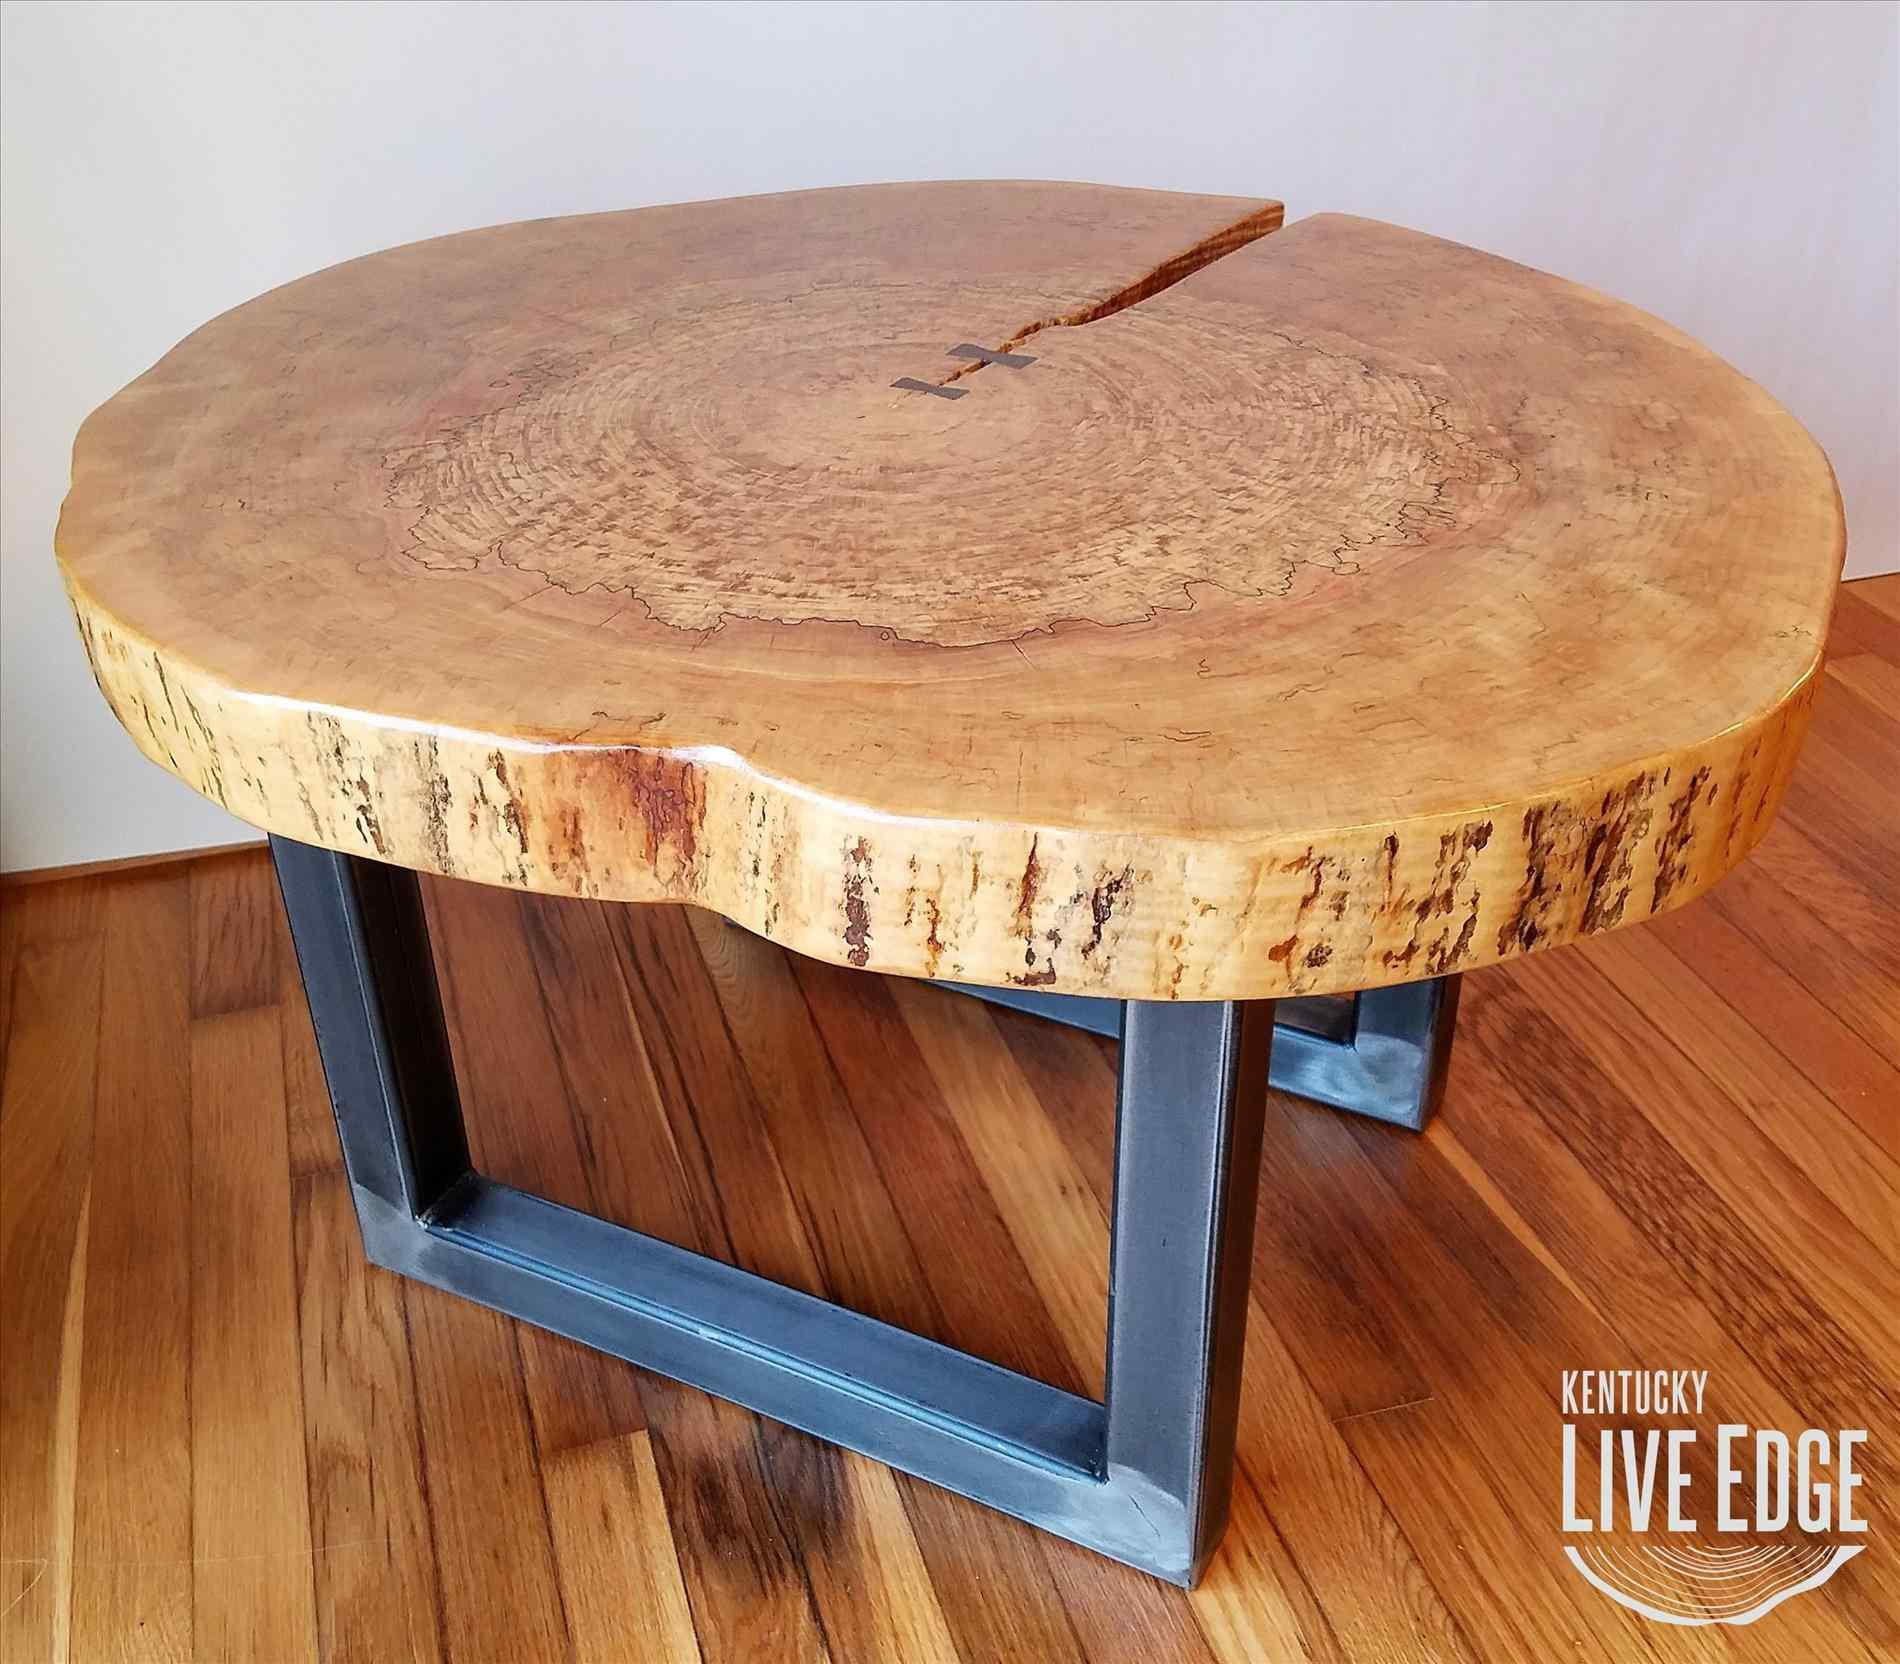 sliced log coffee table live edge industrial tree slice rustic liveedgecom petrified wood side unique accent tables bali chic slab ikea bathroom storage mahogany glass top outdoor